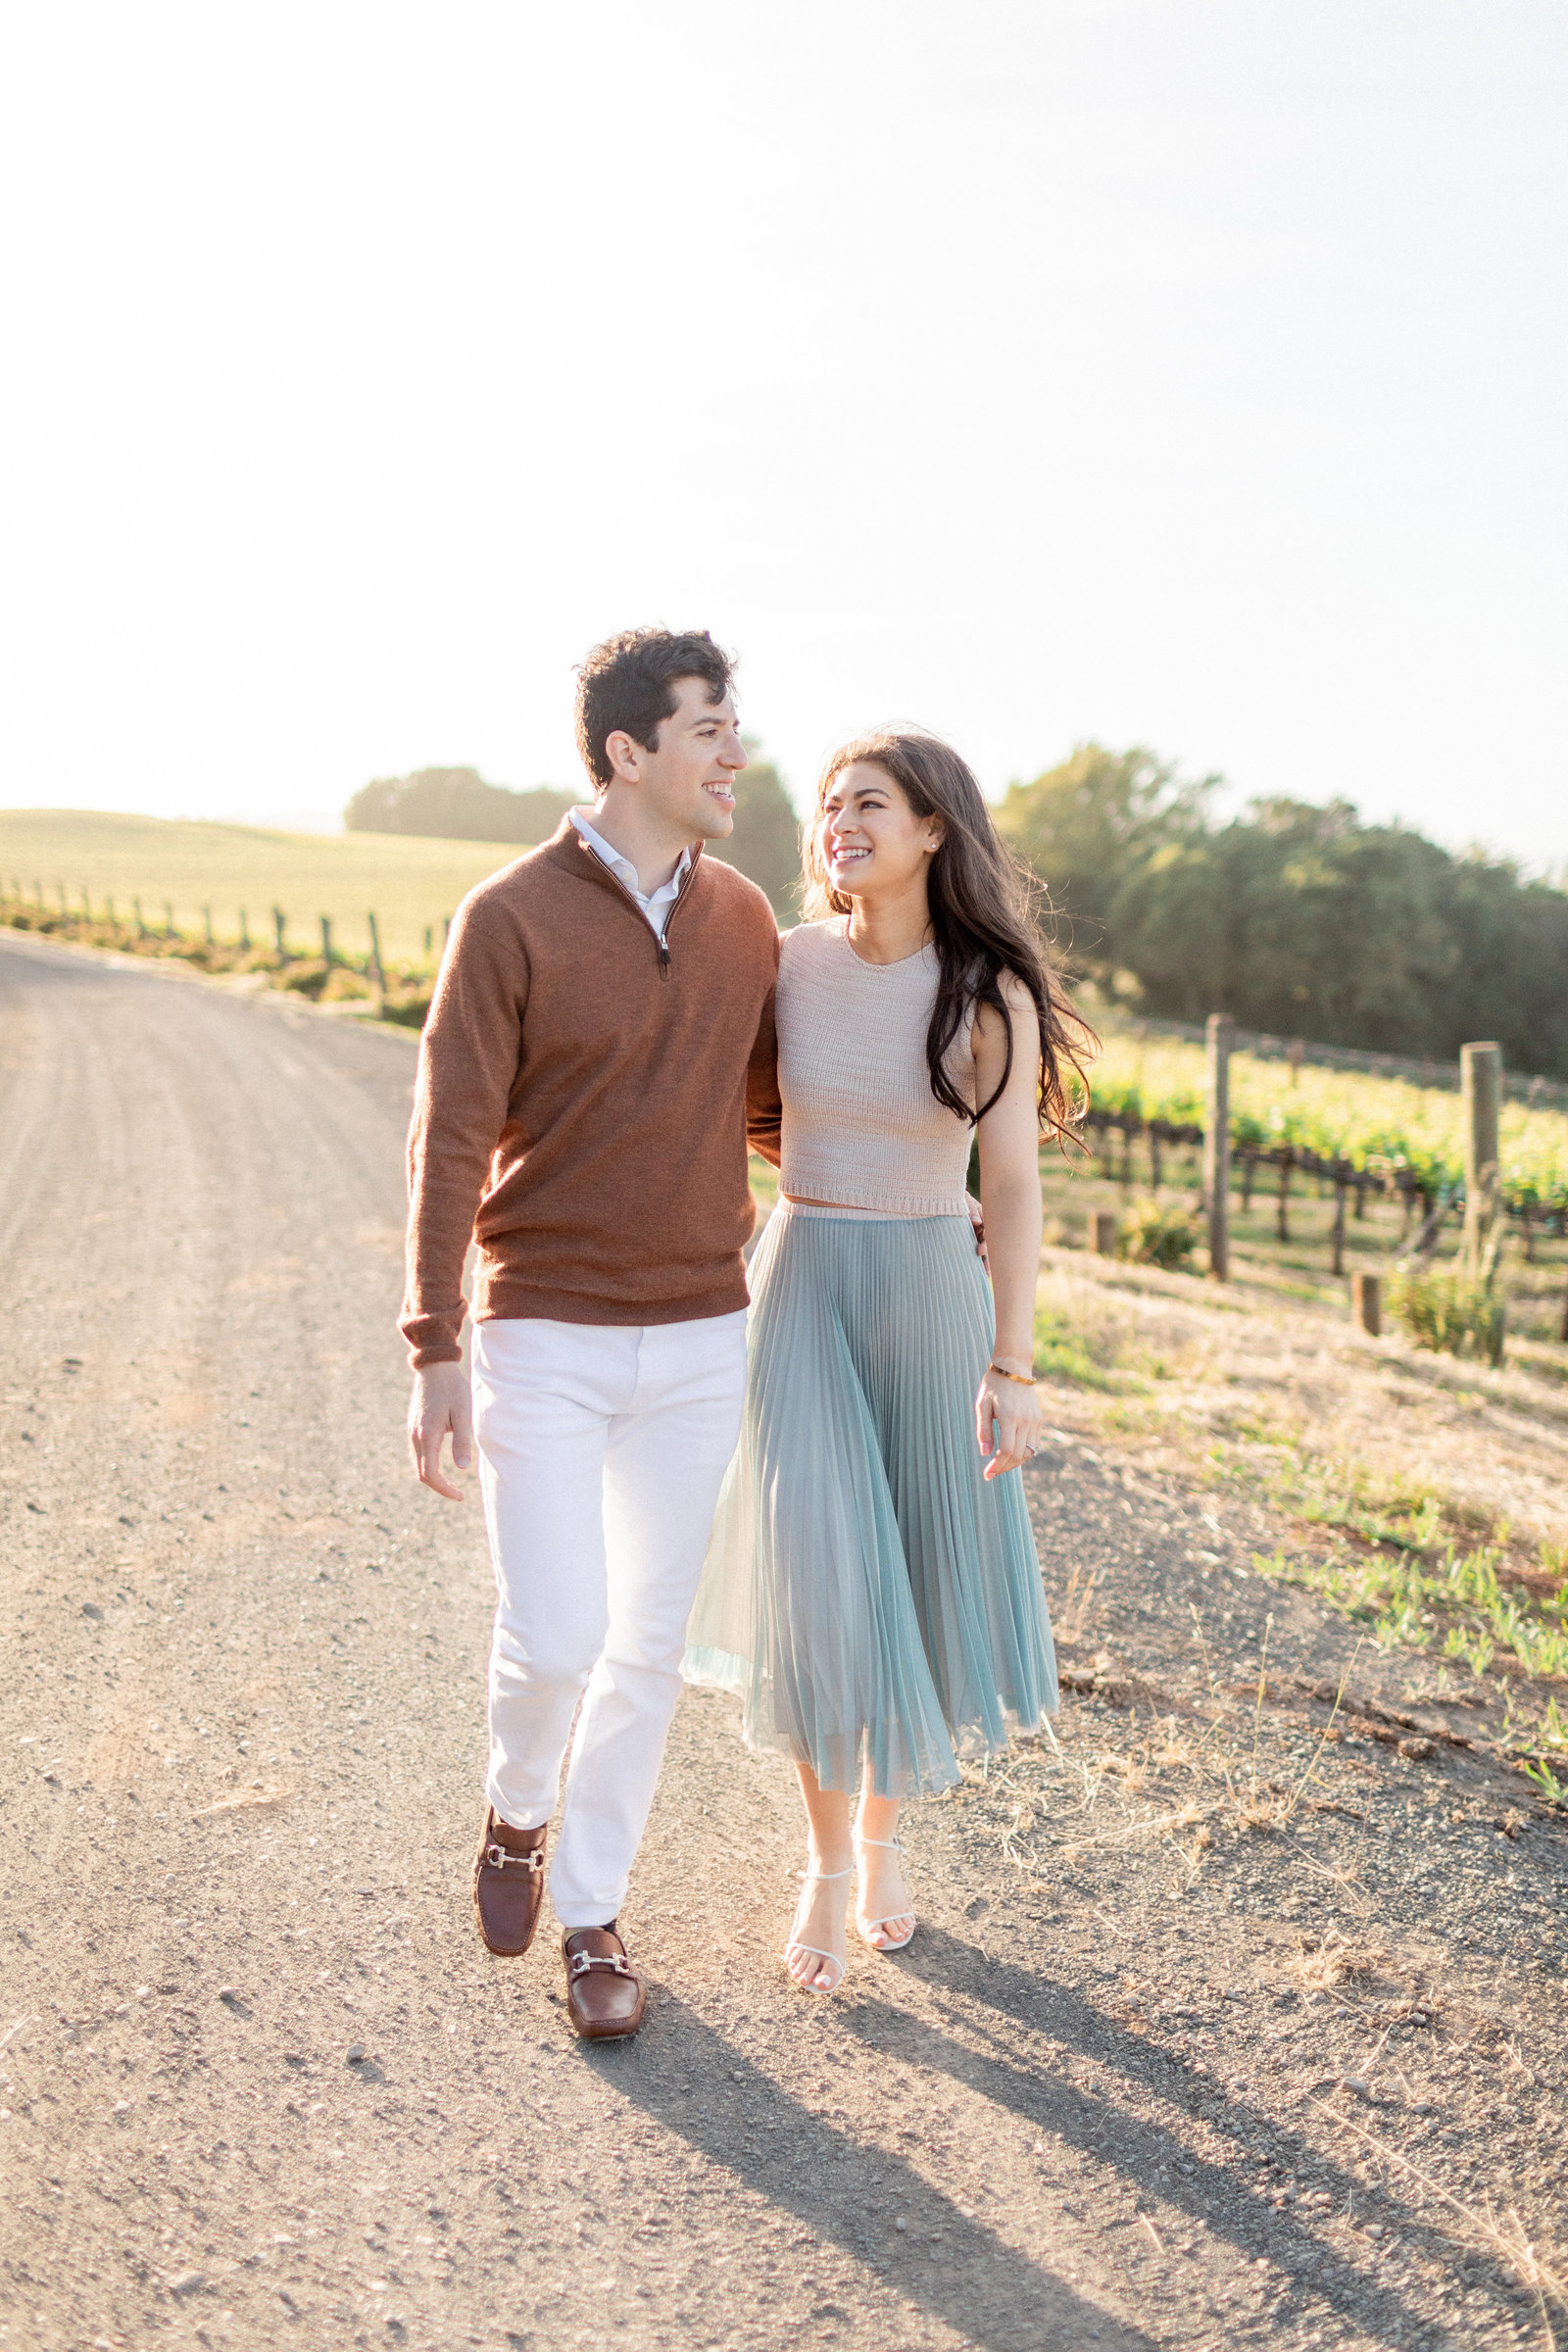 030-larissa-cleveland-engaged-wedding_photographer-san-francisco-carmel-napa-california-lcphoto-AJ-engaged-157